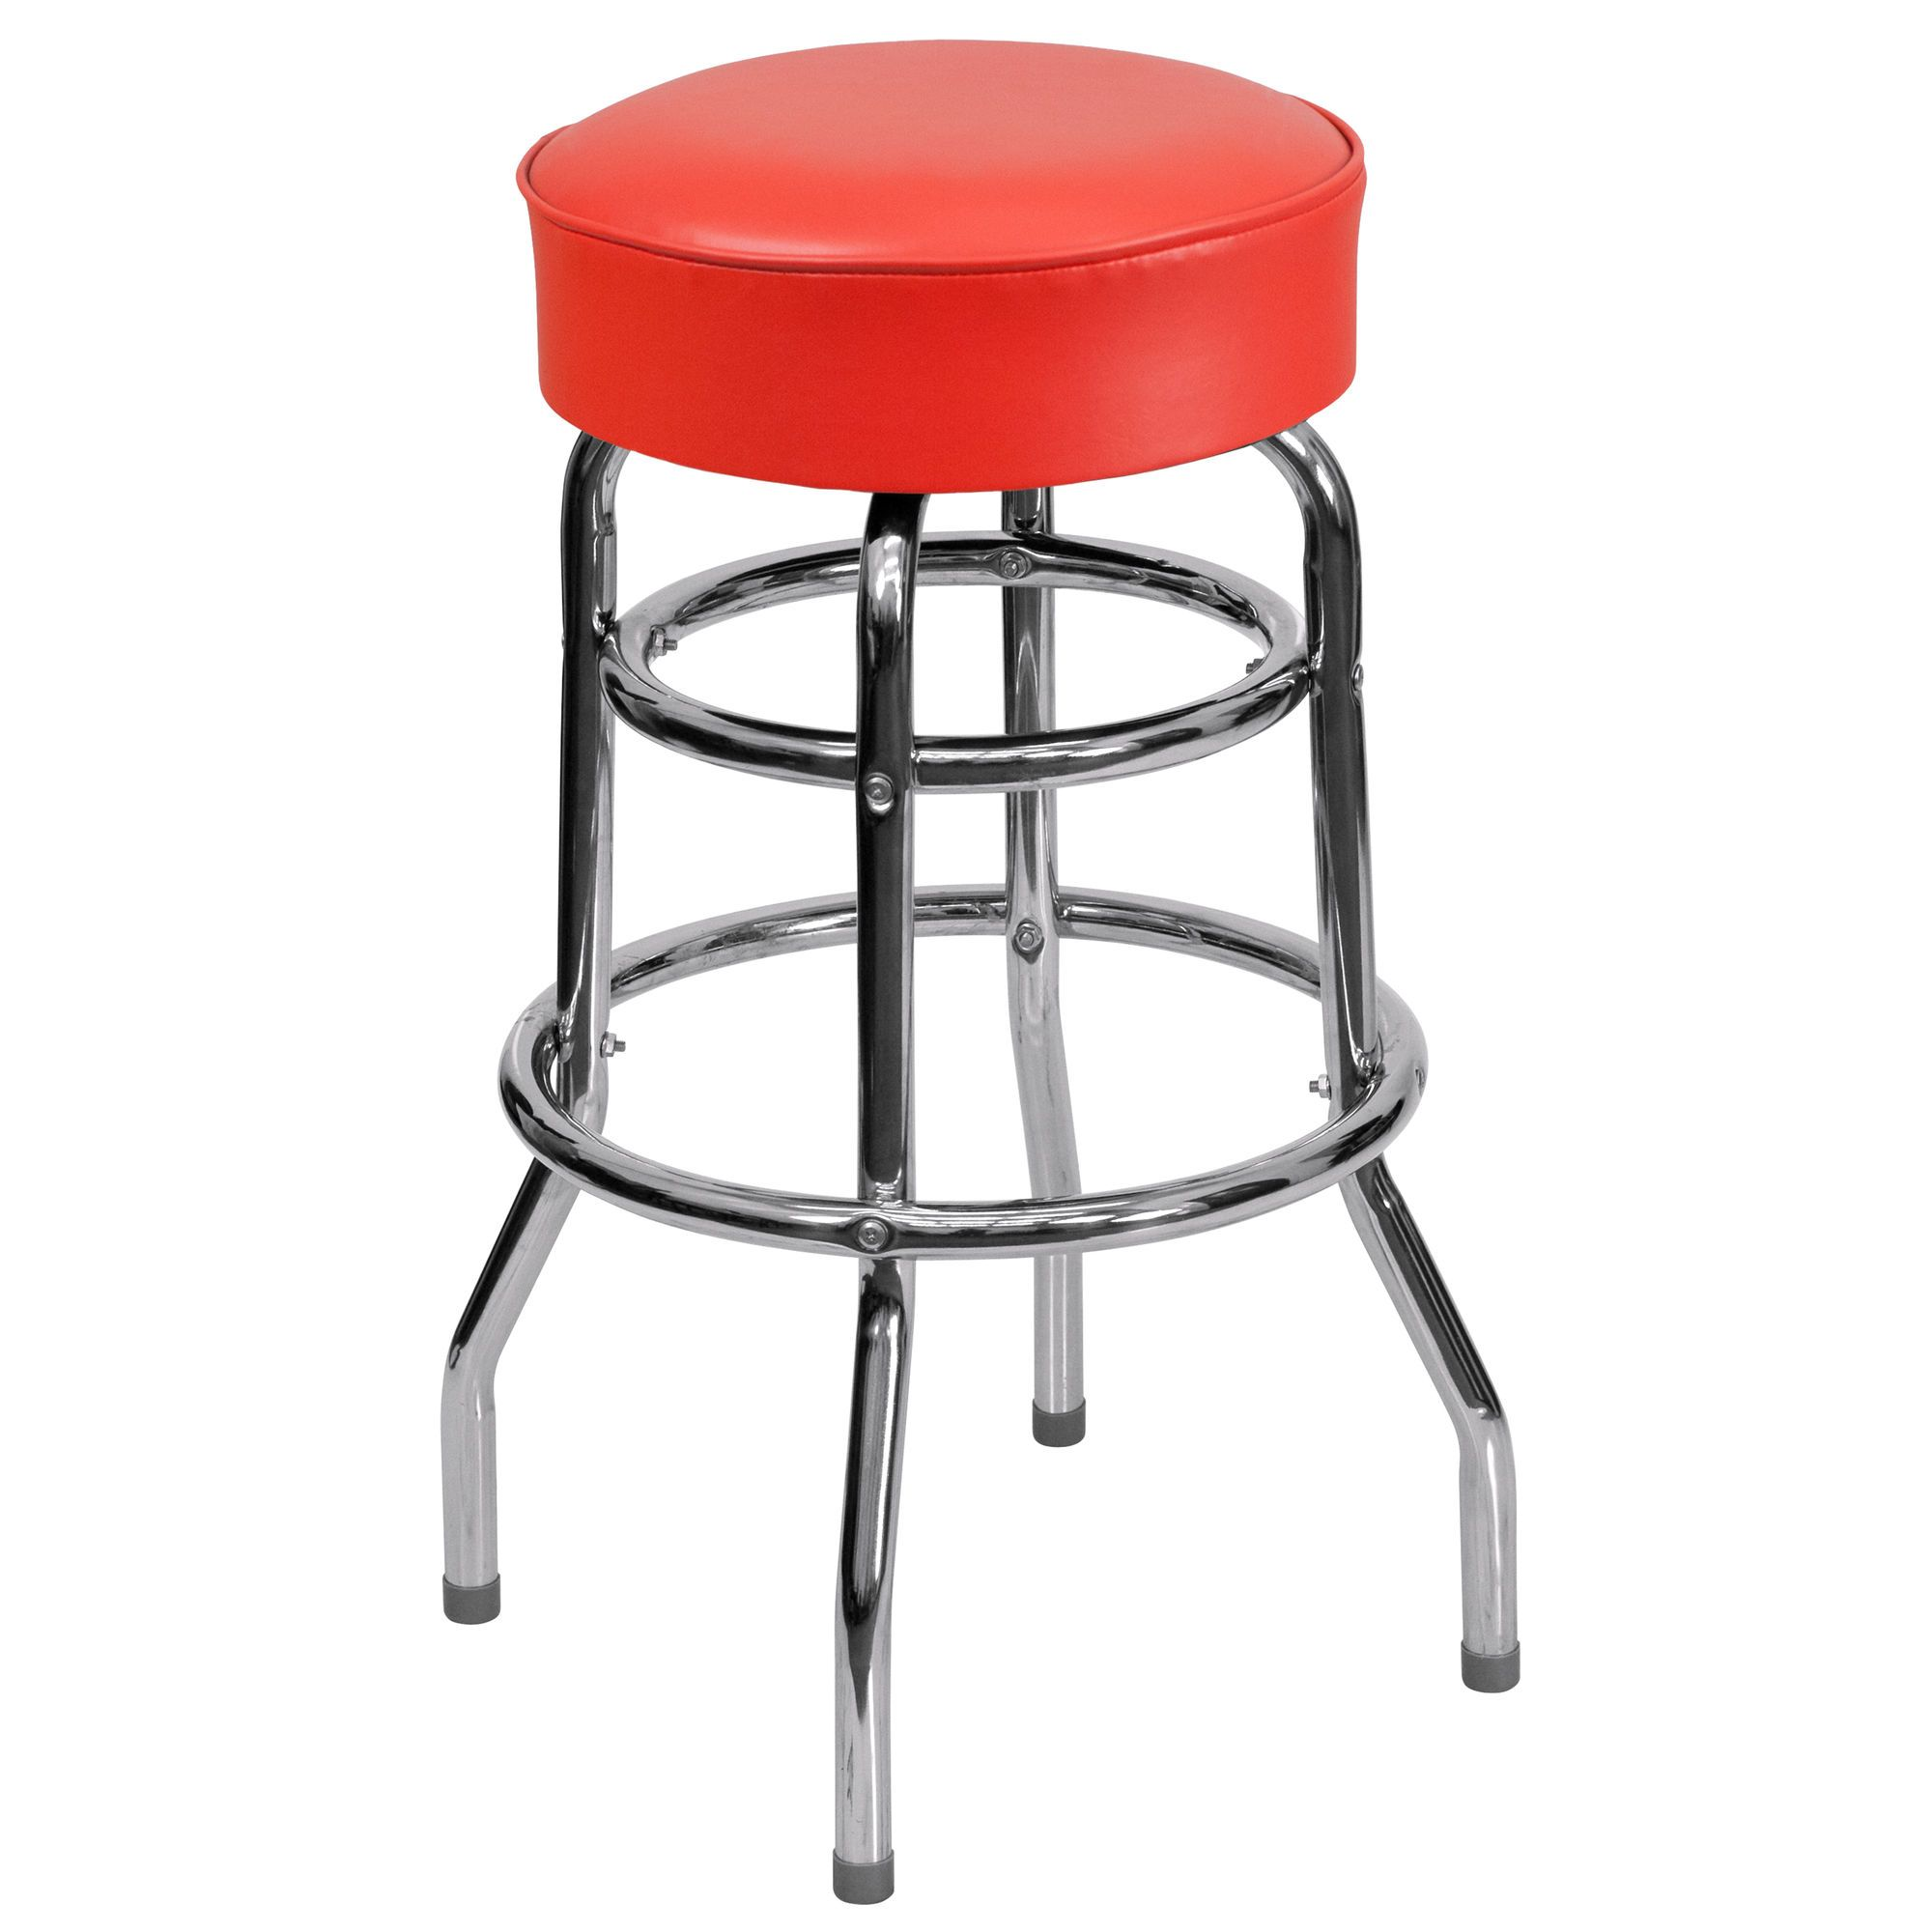 Miraculous Double Ring Chrome Barstool With Black Vinyl Swivel Seat Beatyapartments Chair Design Images Beatyapartmentscom